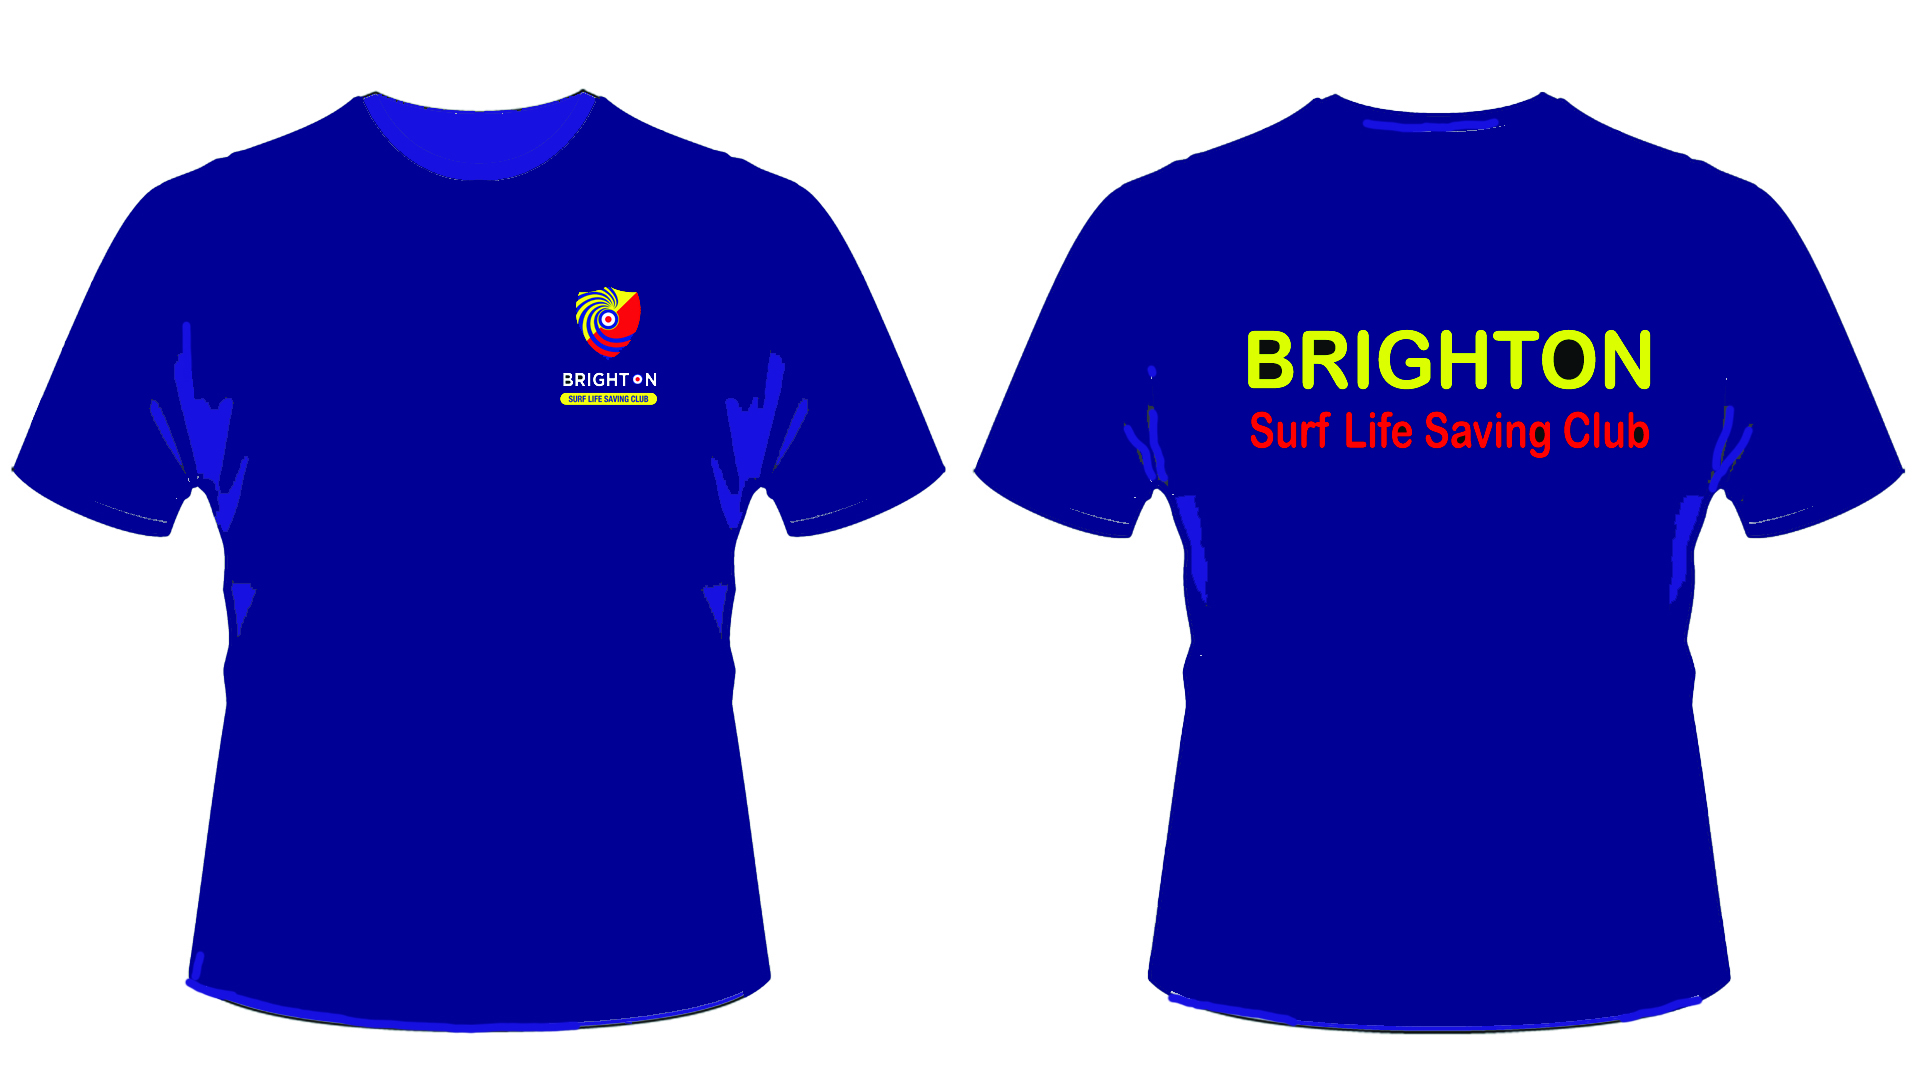 The Brighton Light Tee